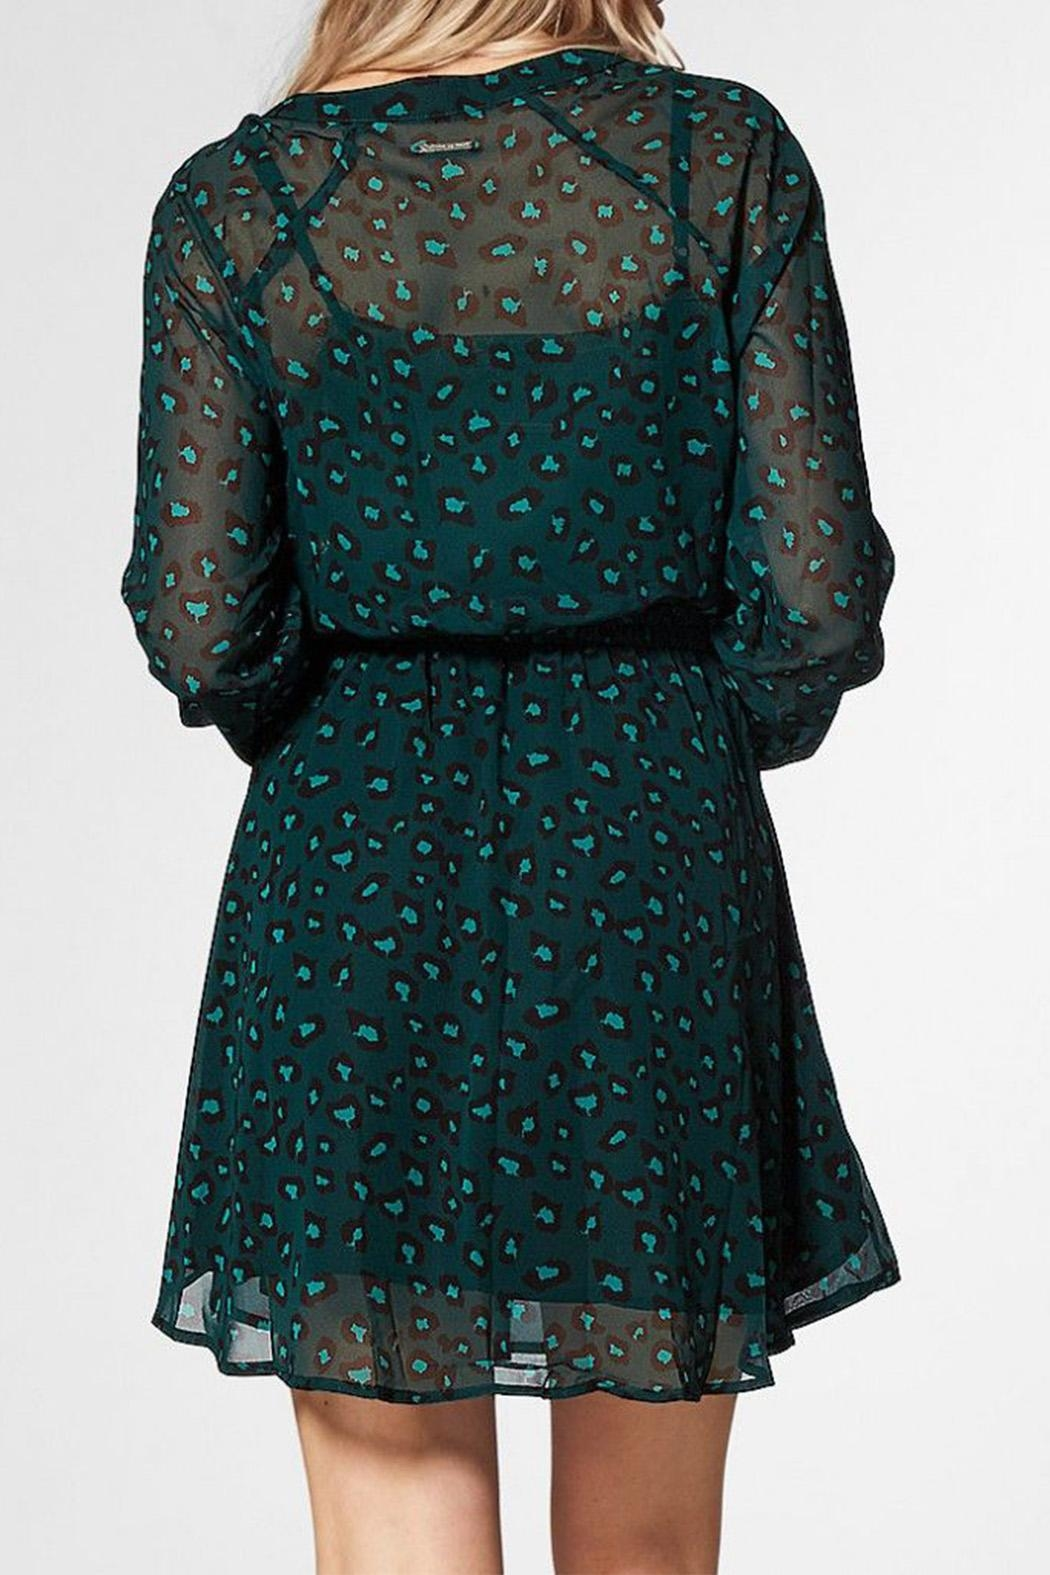 Circle Of Trust Kira Green Dress - Side Cropped Image